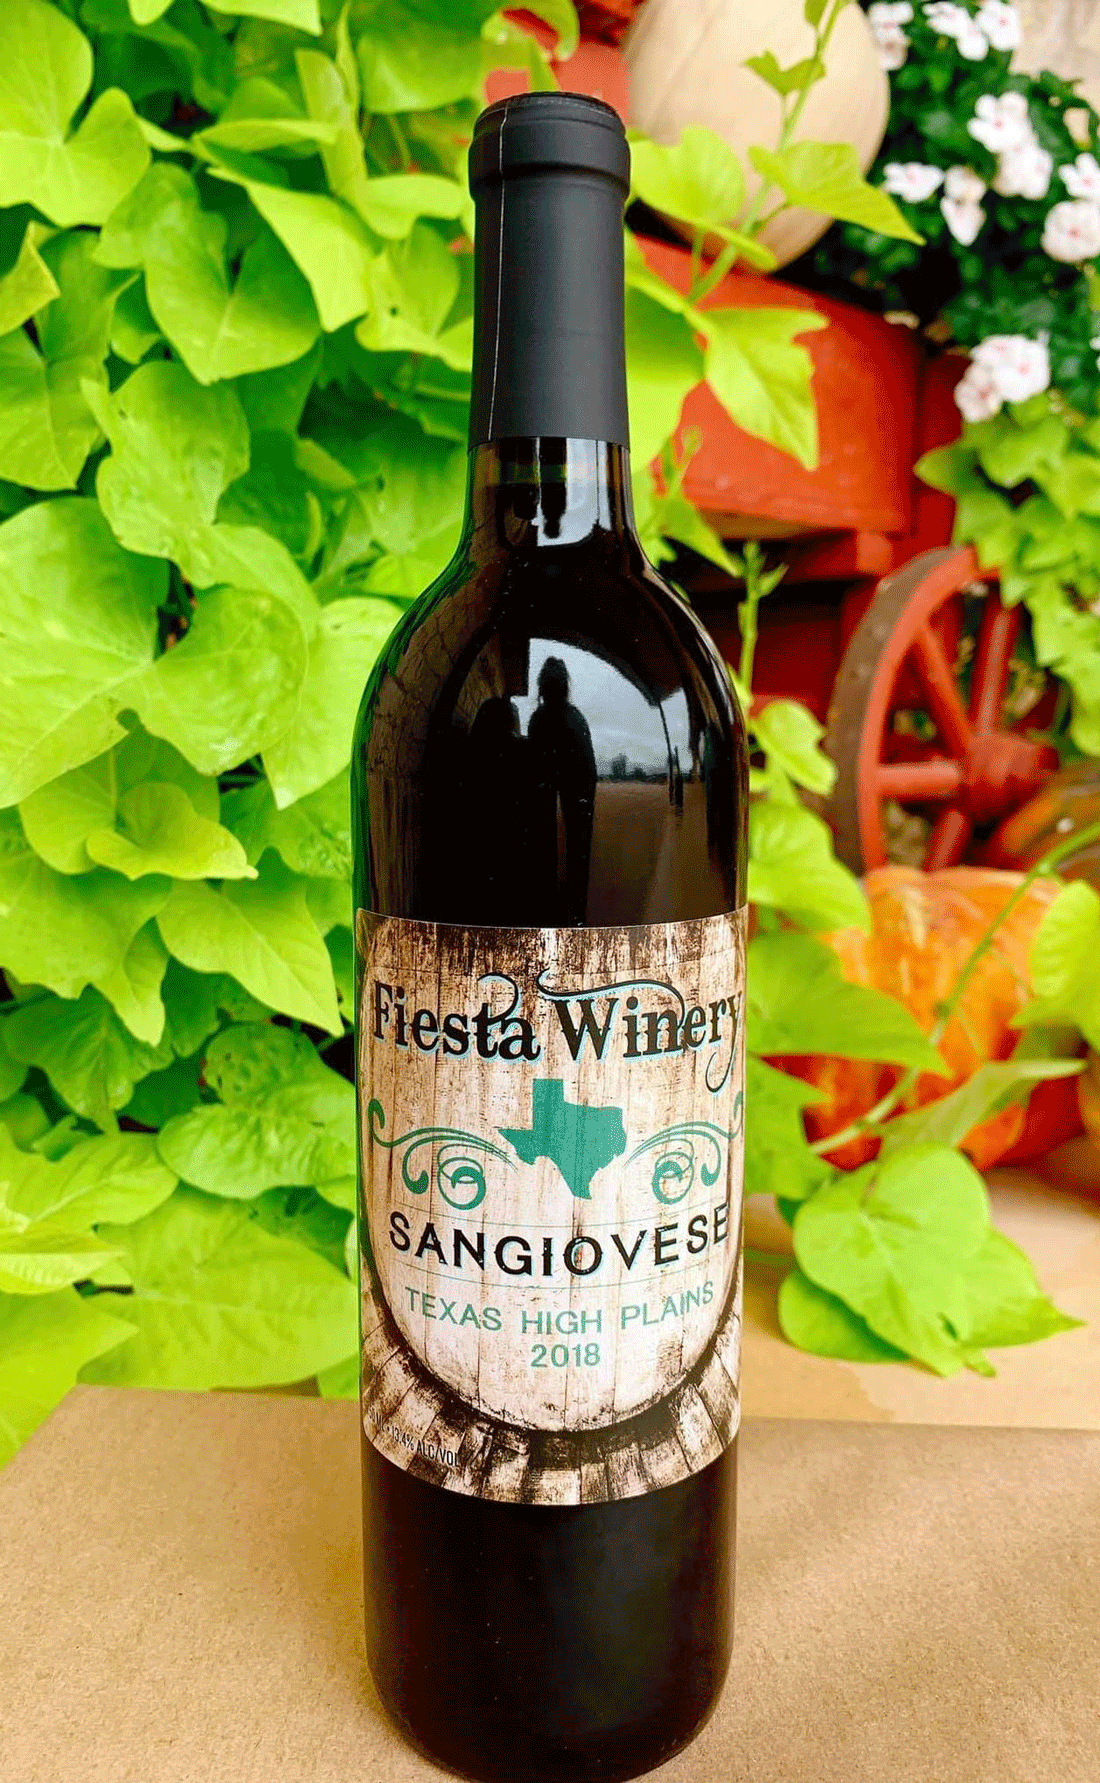 Bottle of wine in front of green vines